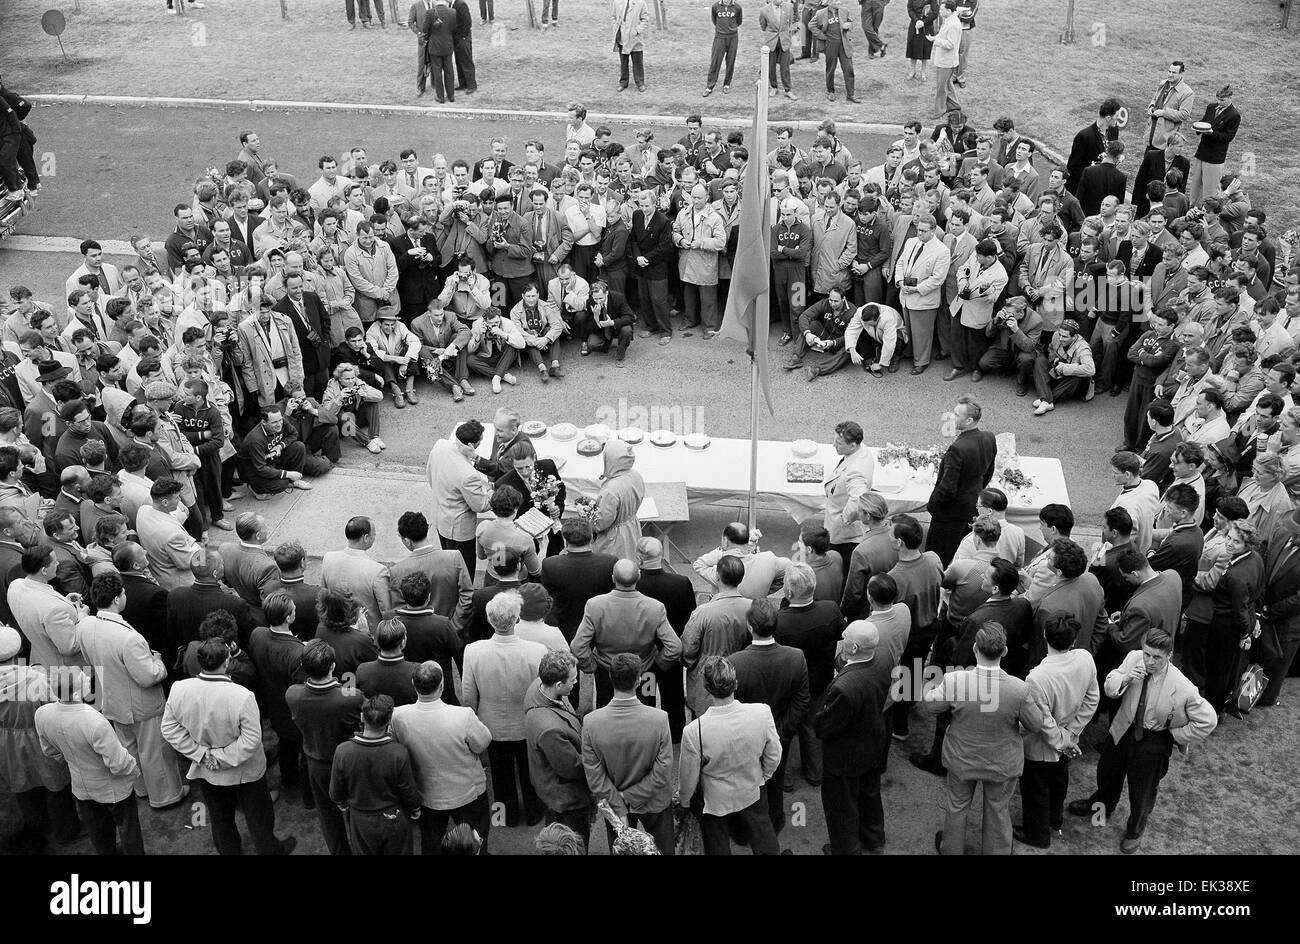 Australia. Melbourne. 1956 Summer Olympics. Head of the Soviet delegation N. Romanod presents cakes to Soviet medal - Stock Image